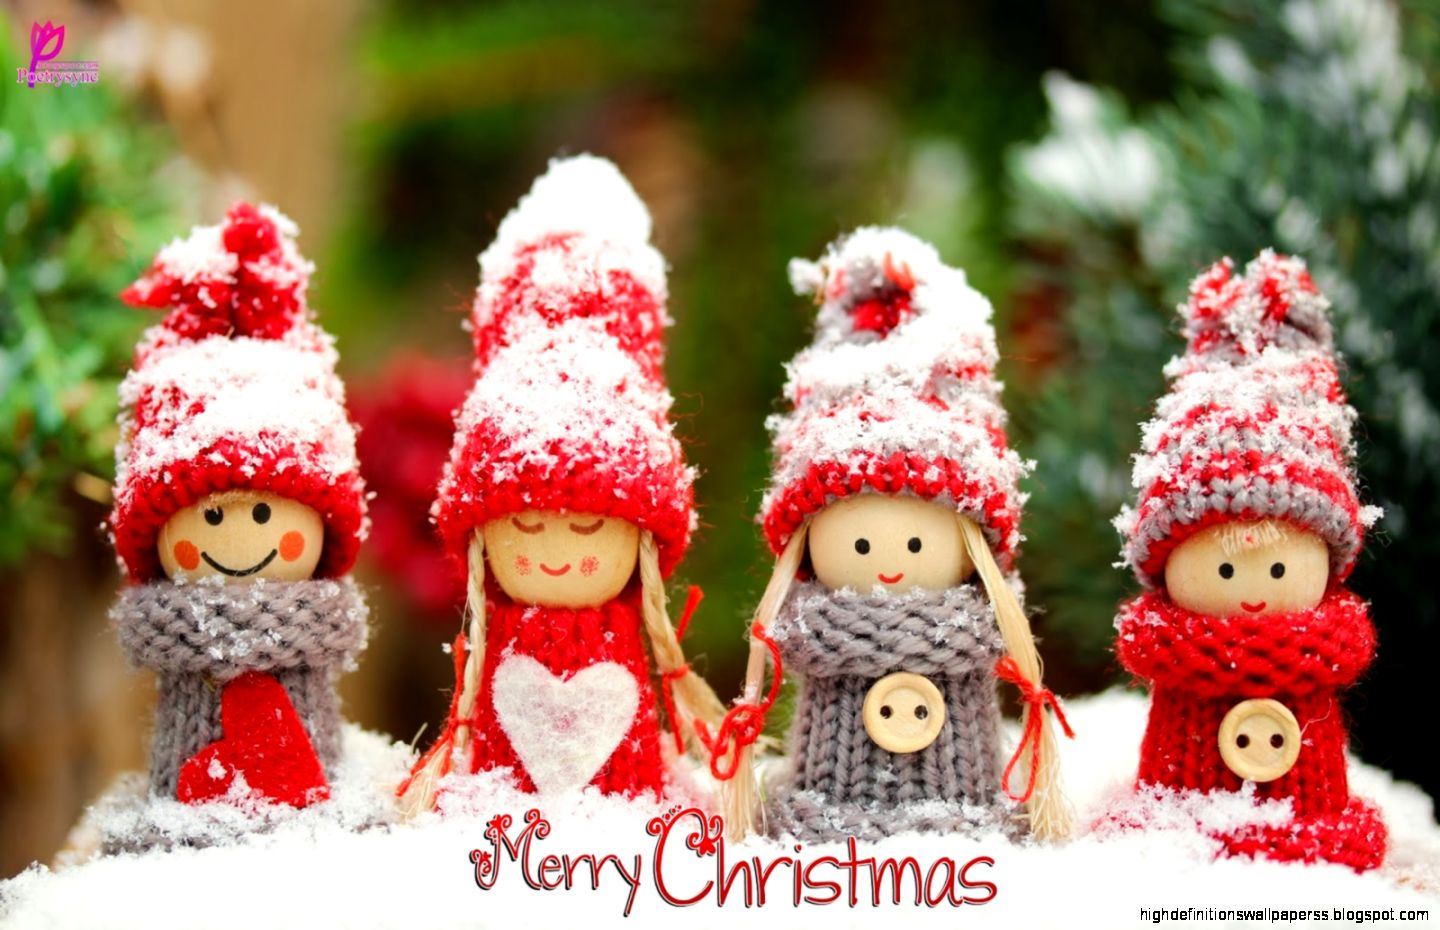 merry christmas cute wallpaper | high definitions wallpapers